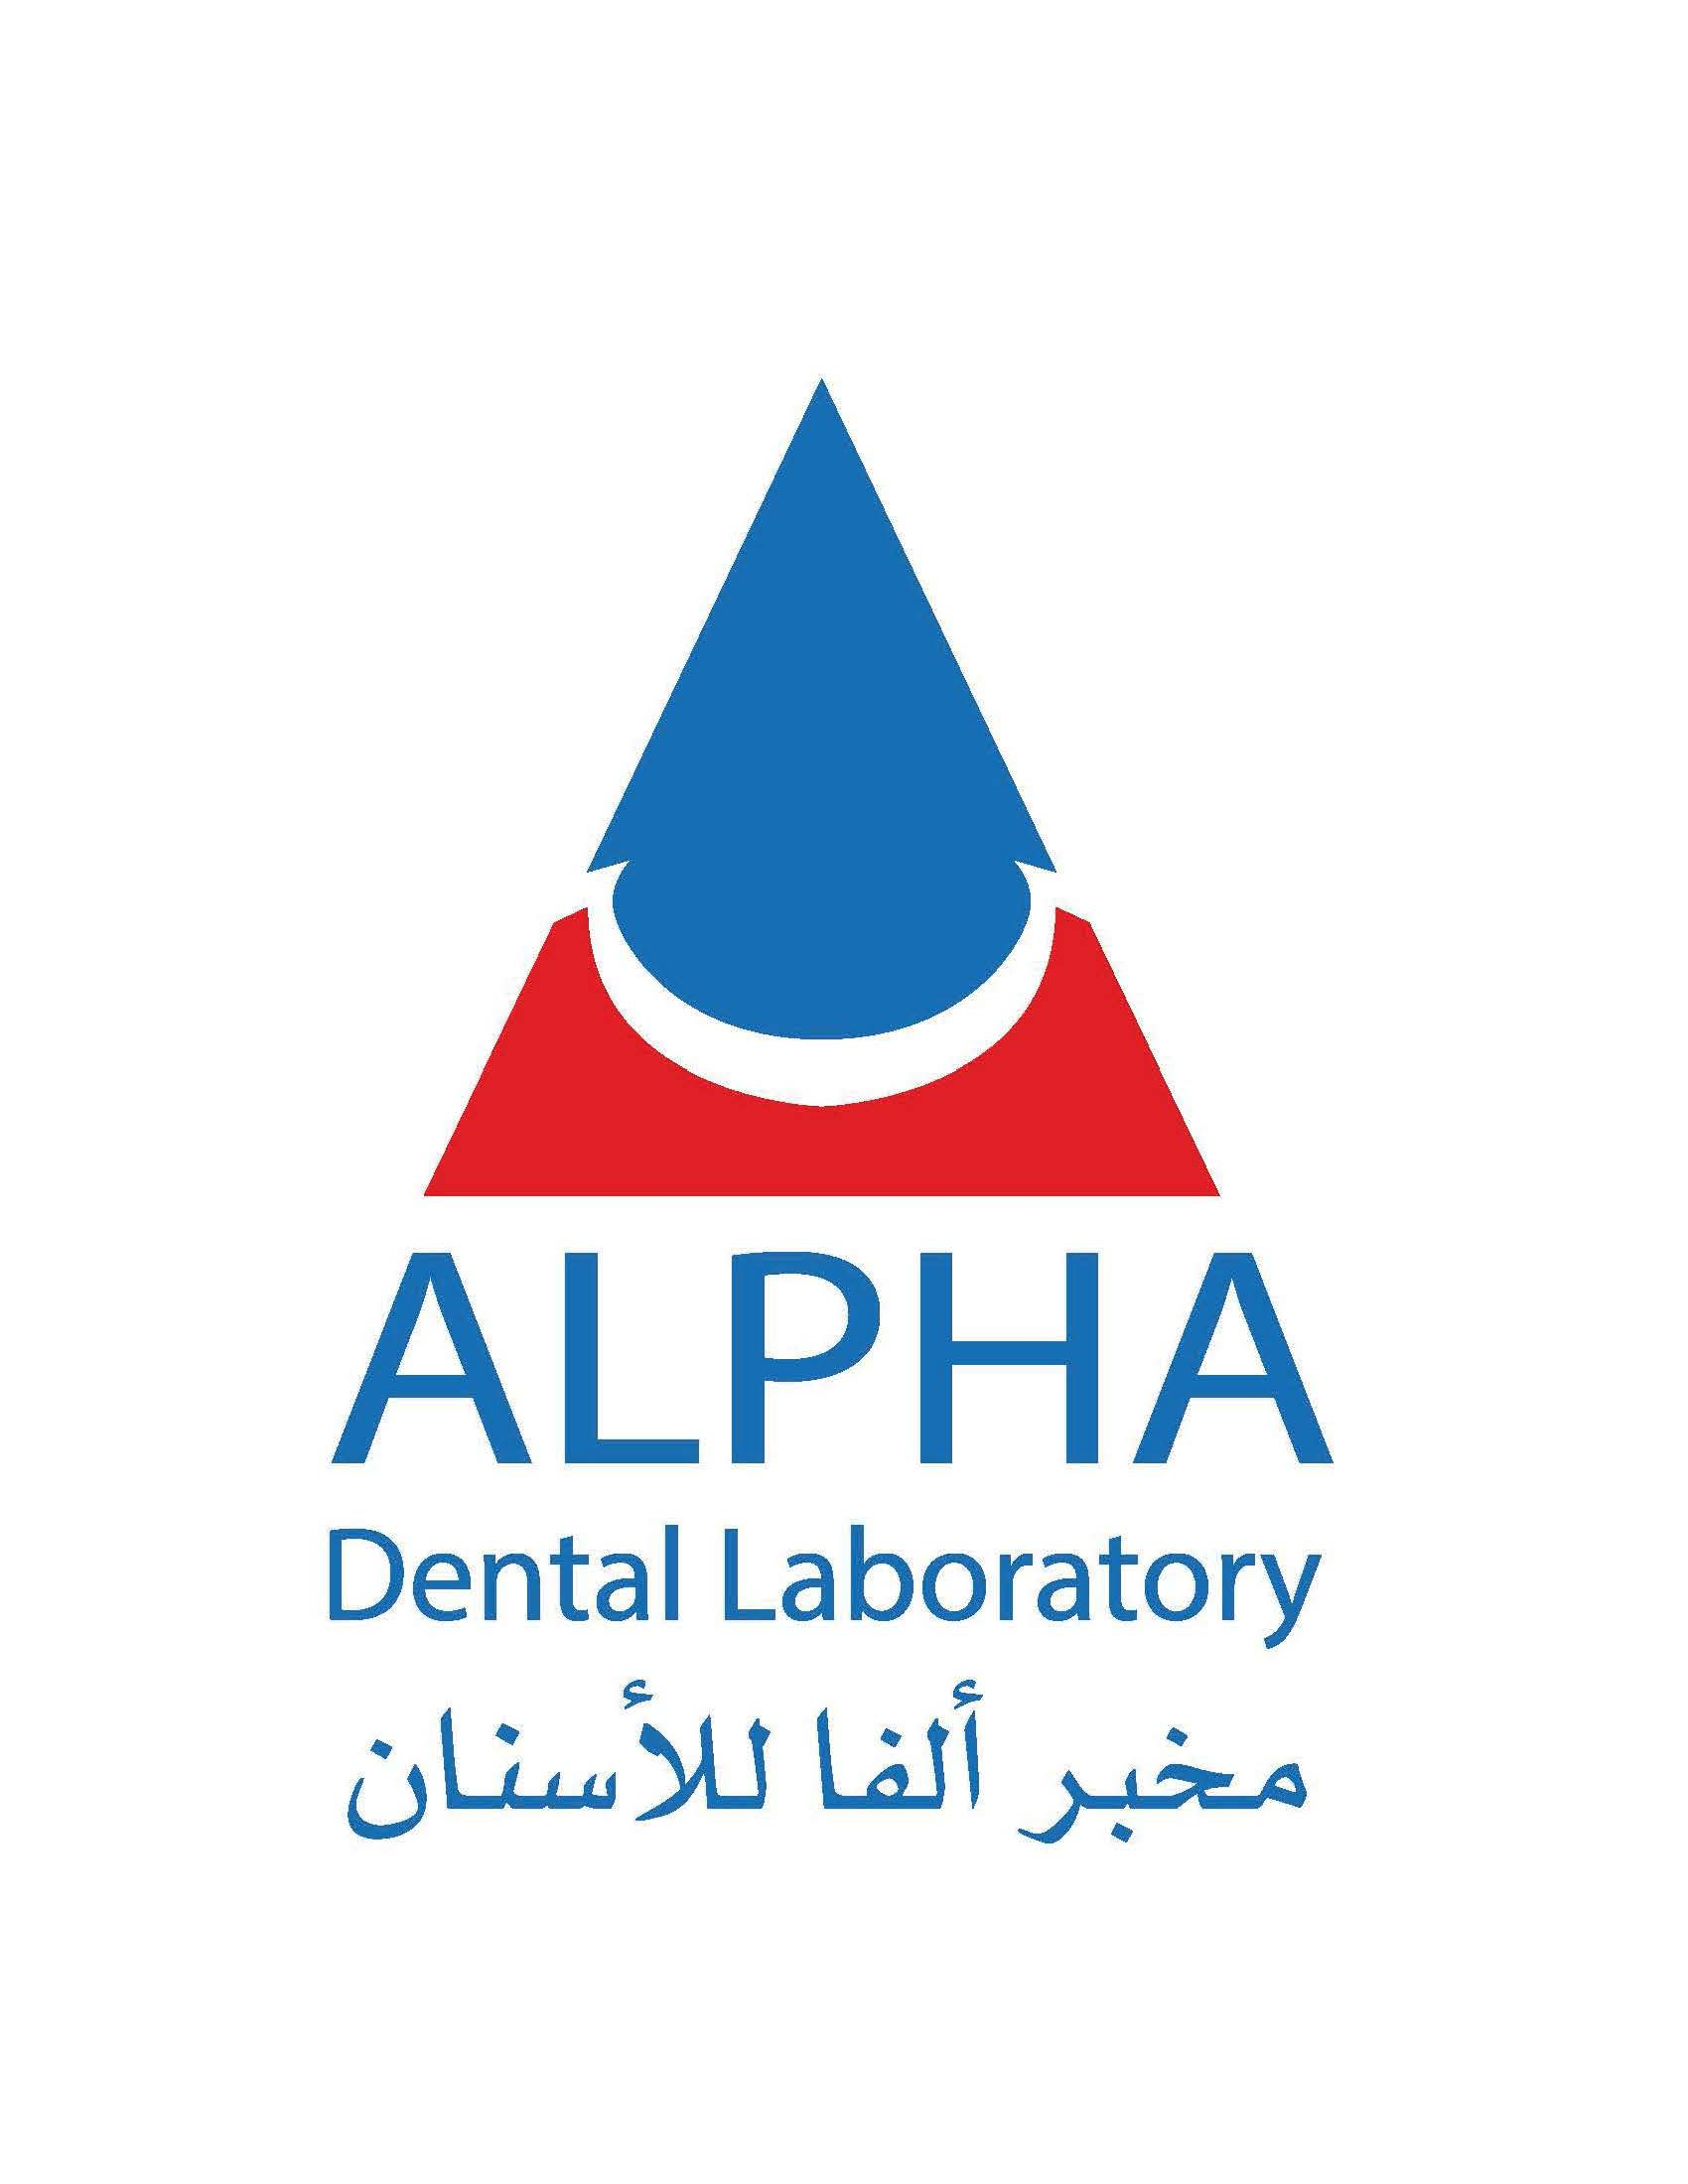 Alpha Dental Laboratory